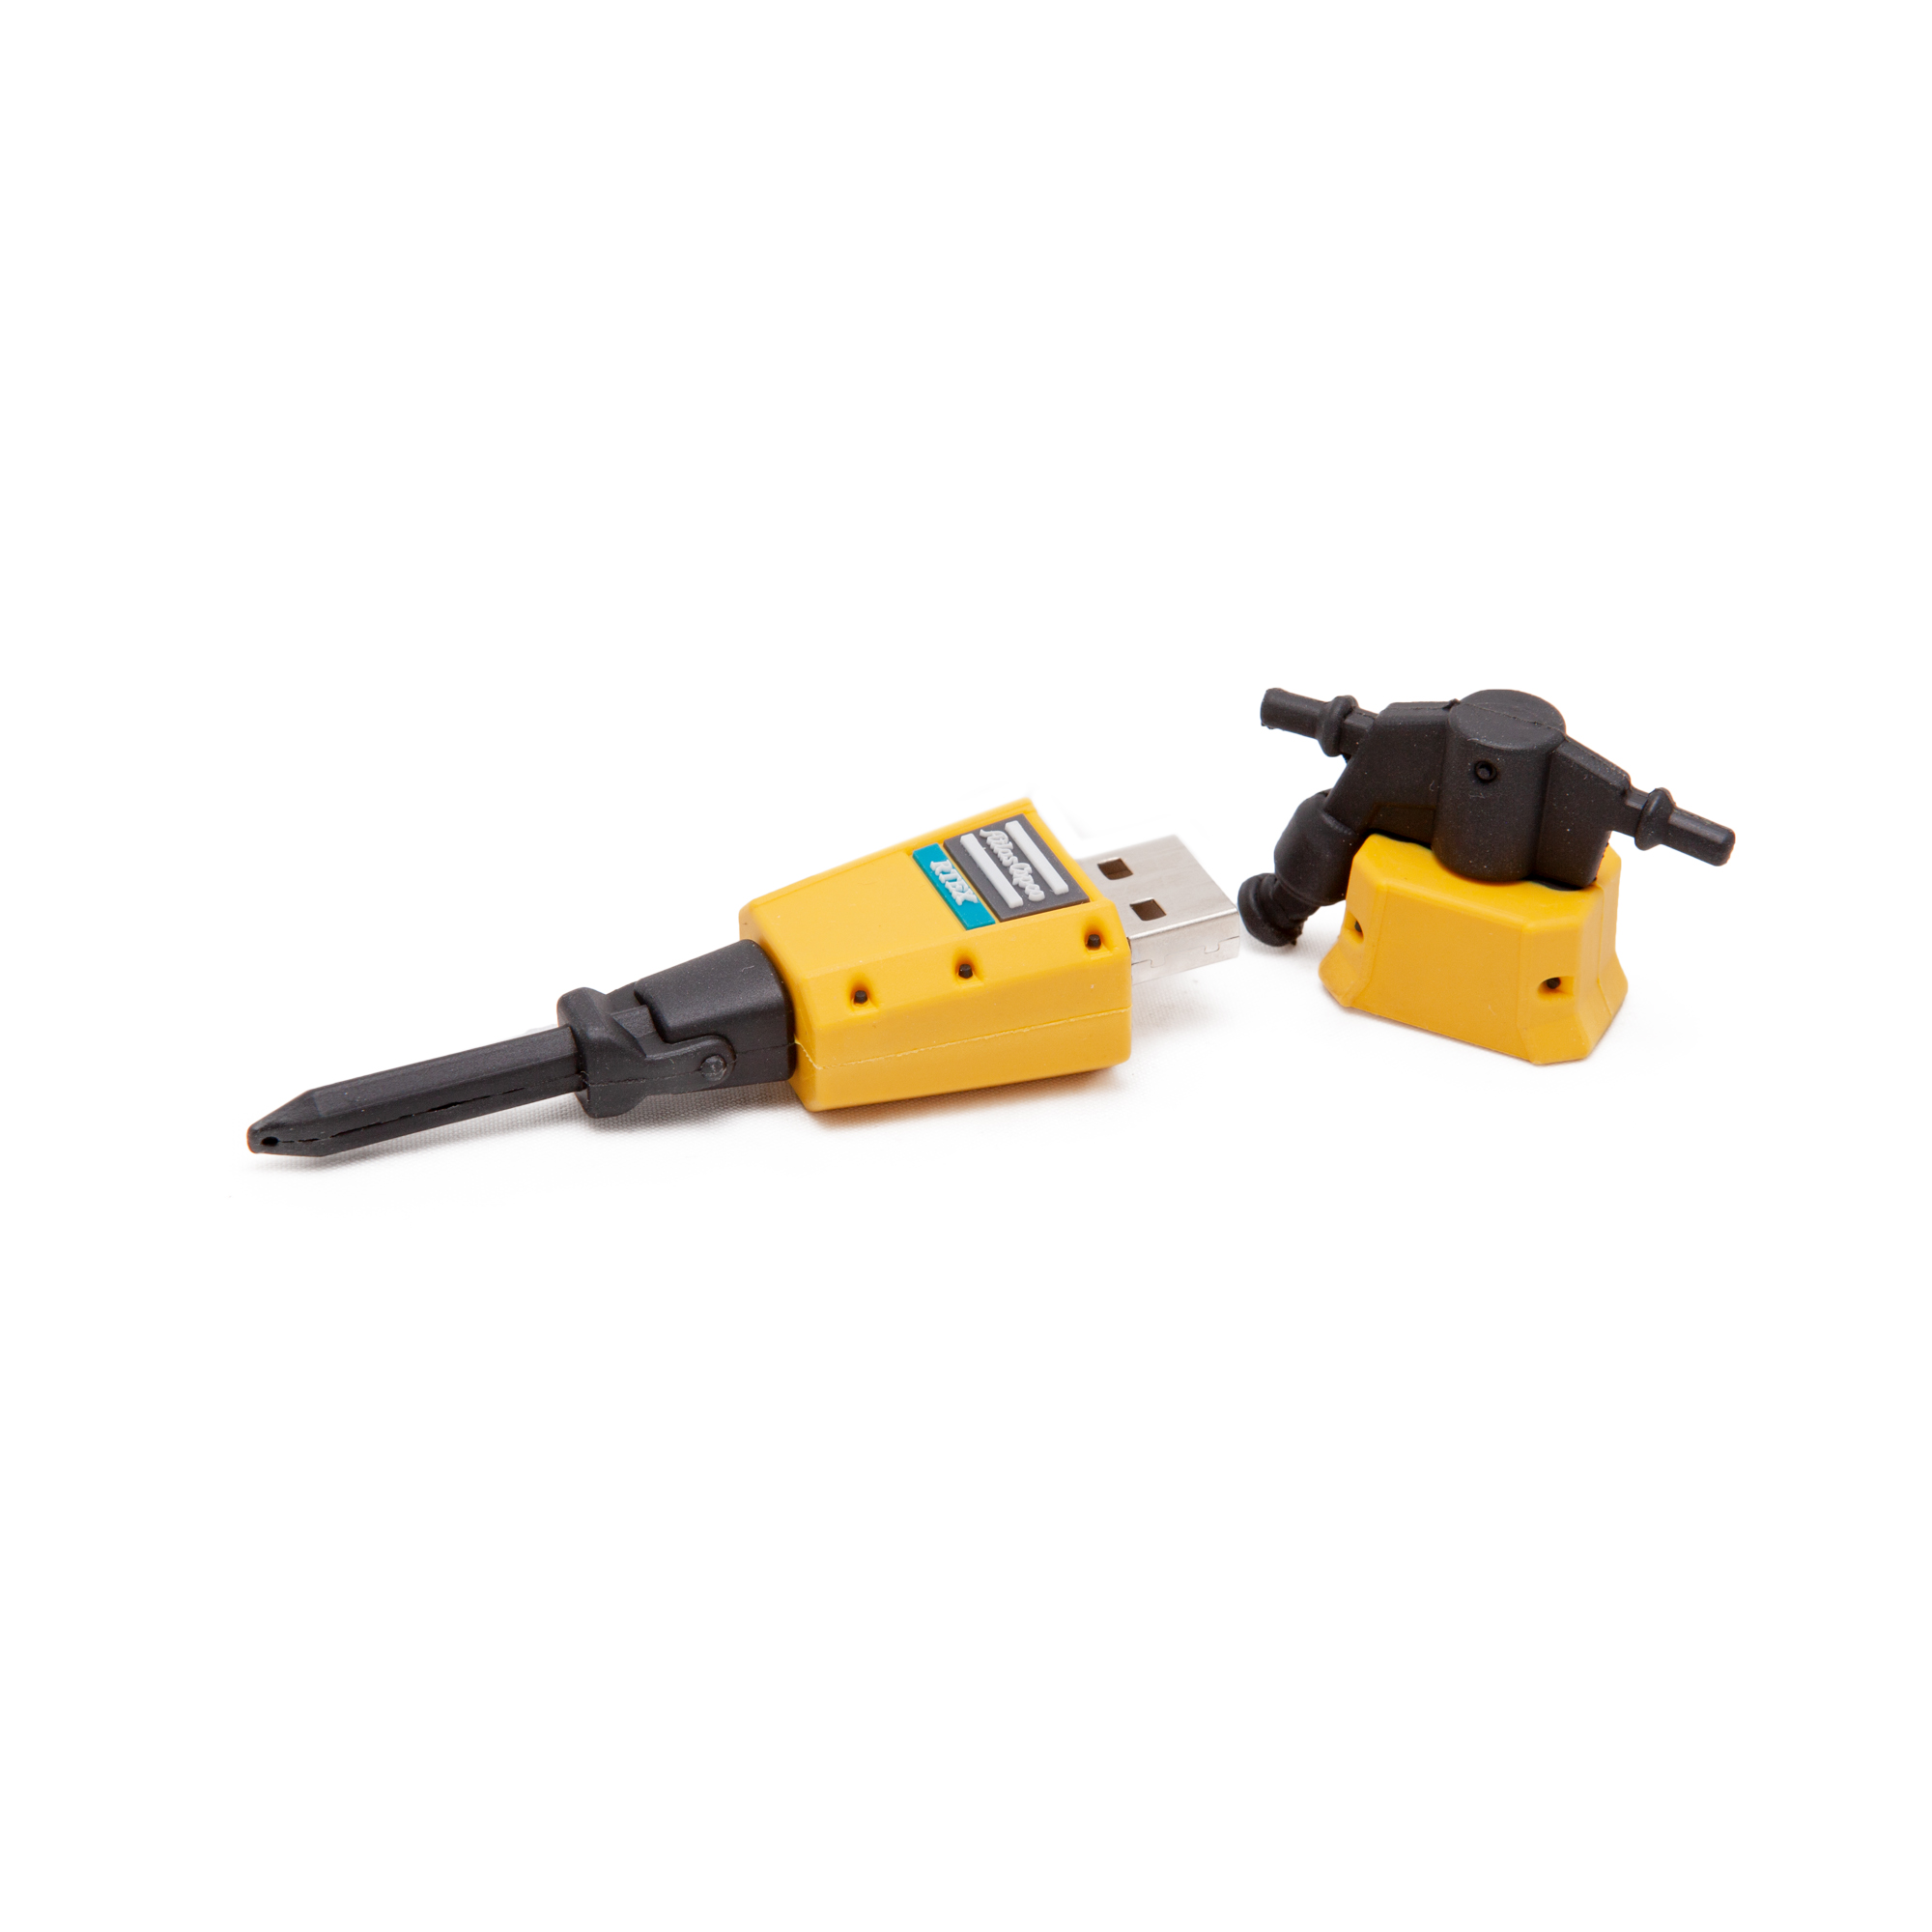 USB in the shape of a RTEX breaker. Capacity 8 GB. 